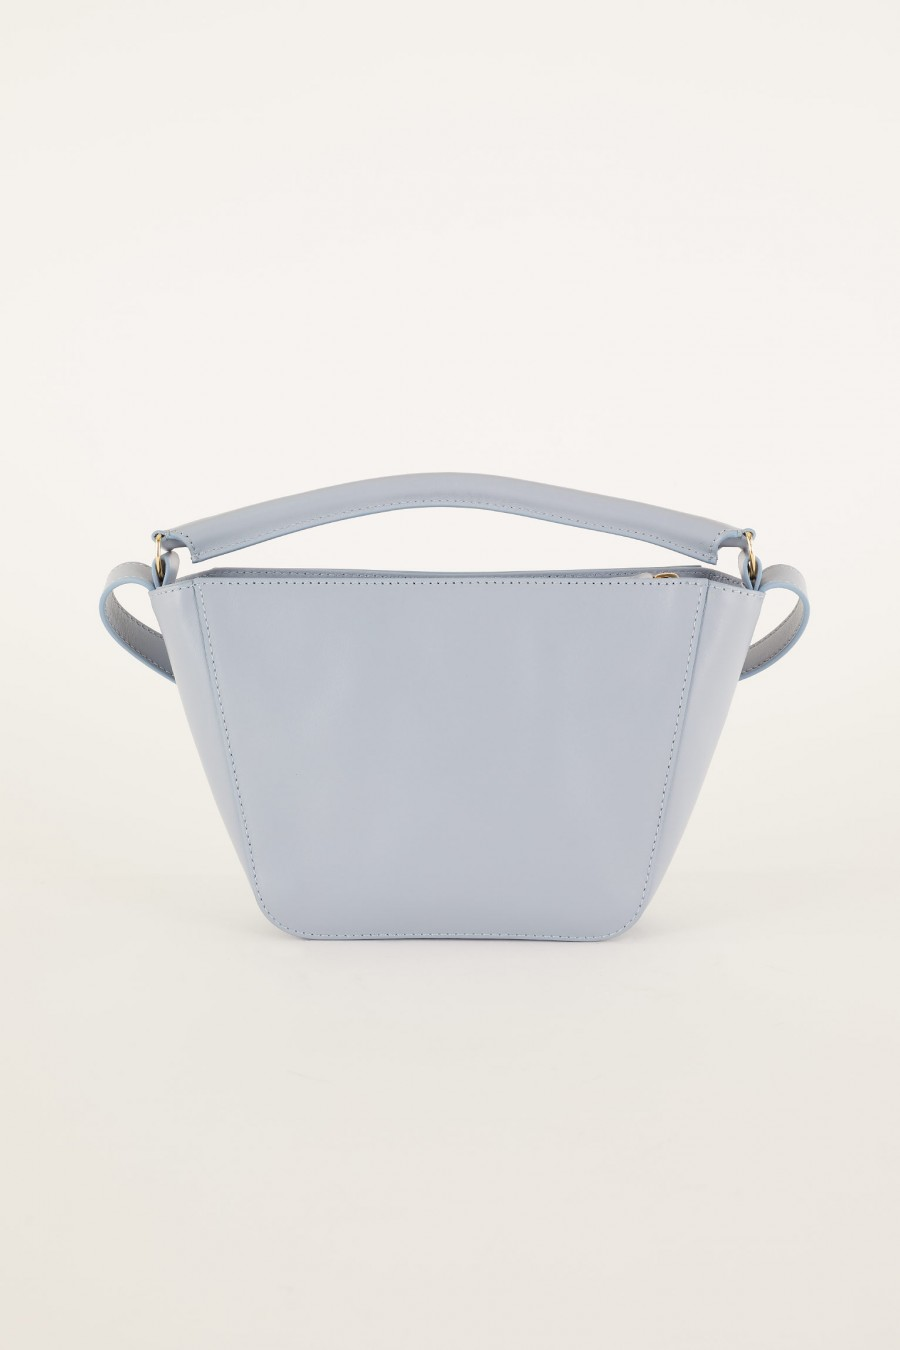 powder blue trapeze bag with handle